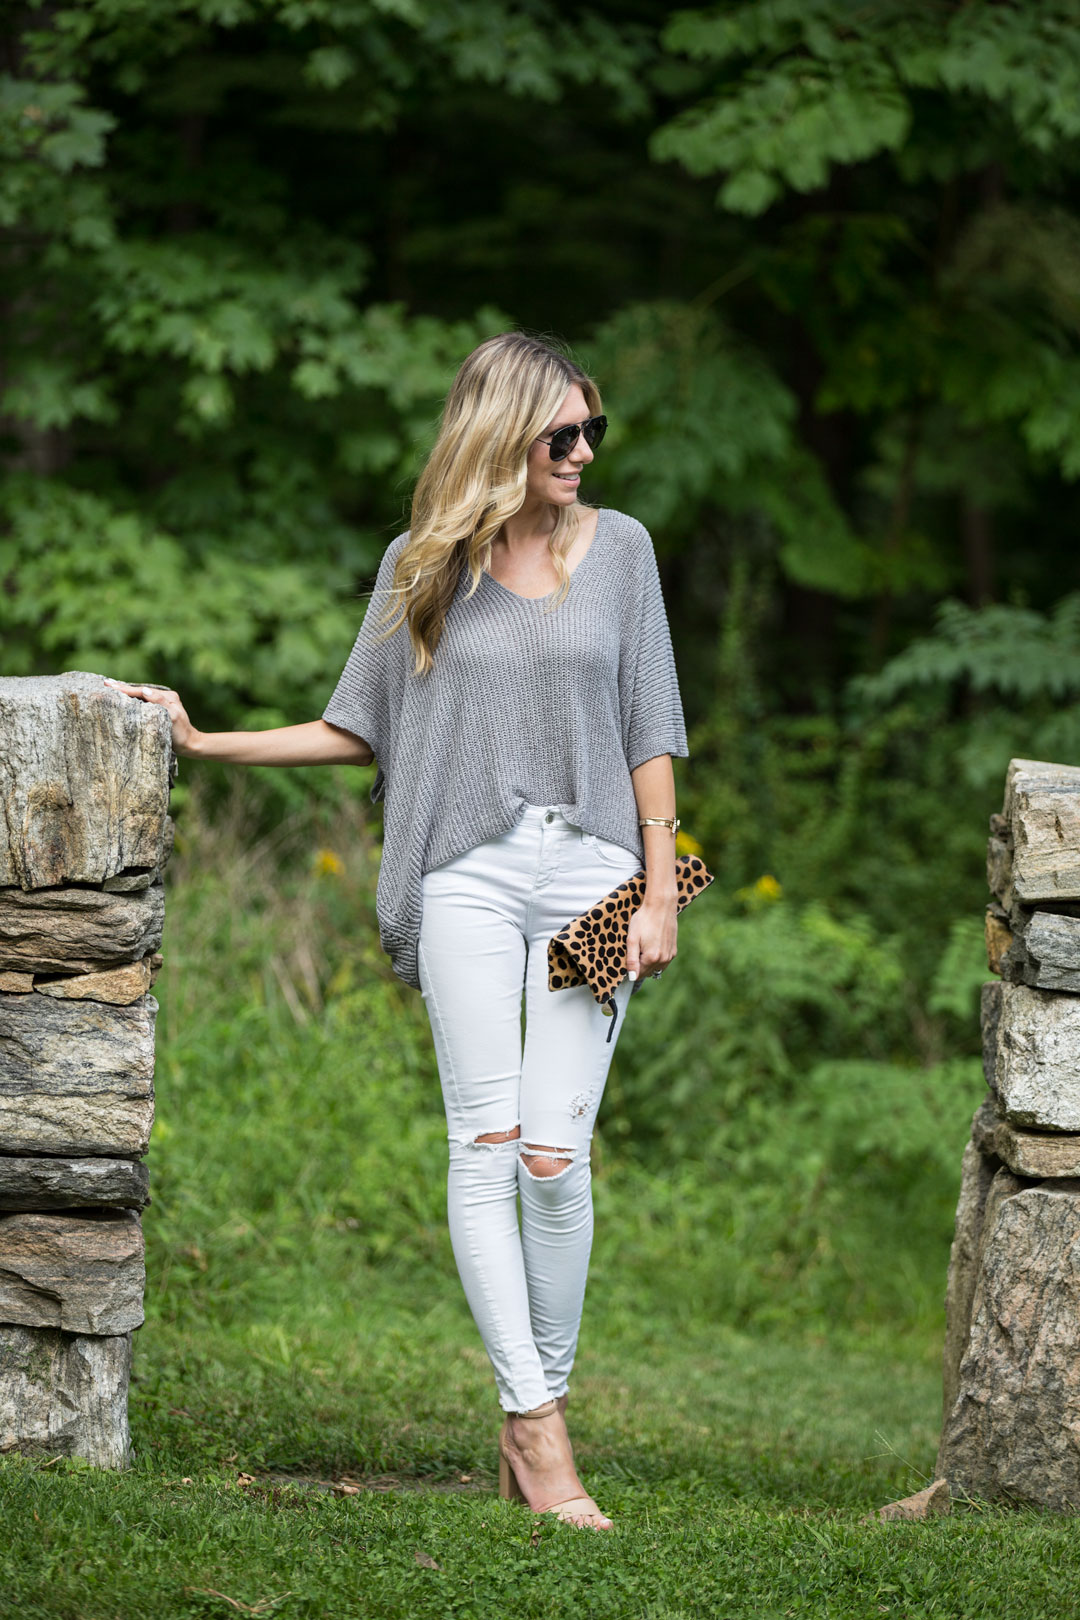 neutral outfit with a pop of leopard